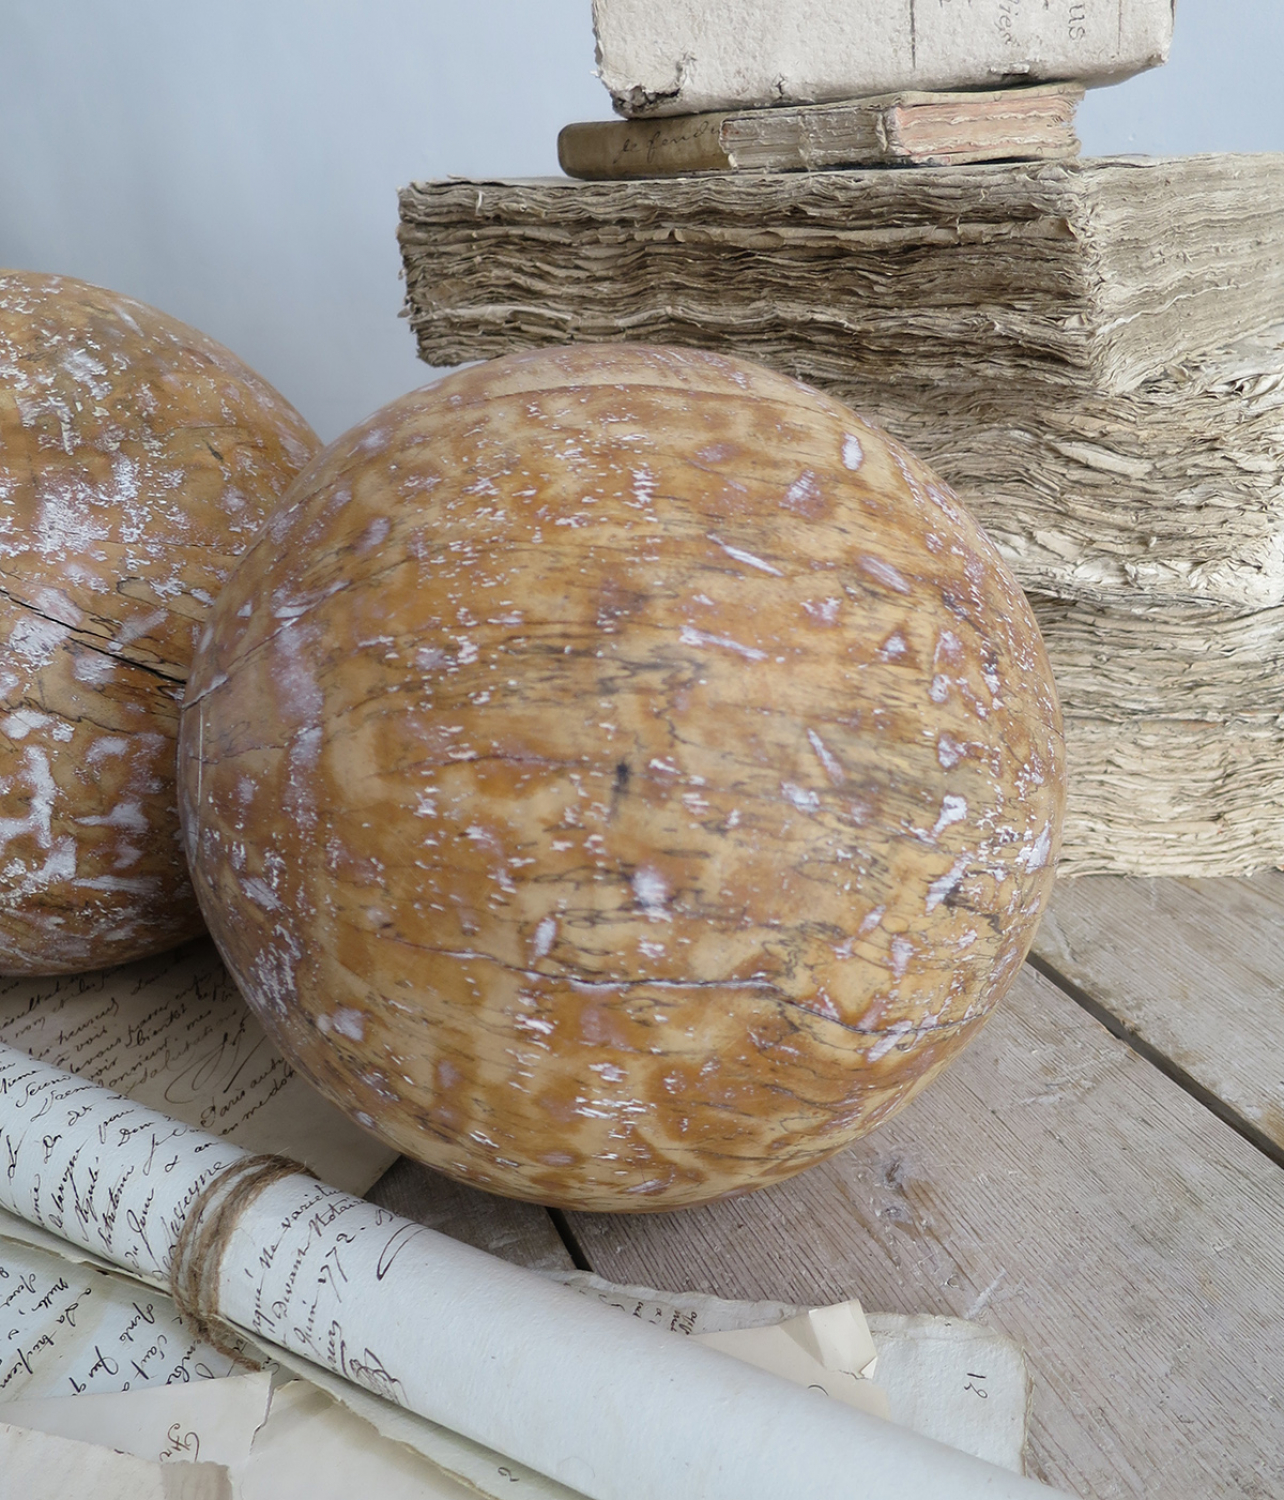 Pair of old wooden Balls